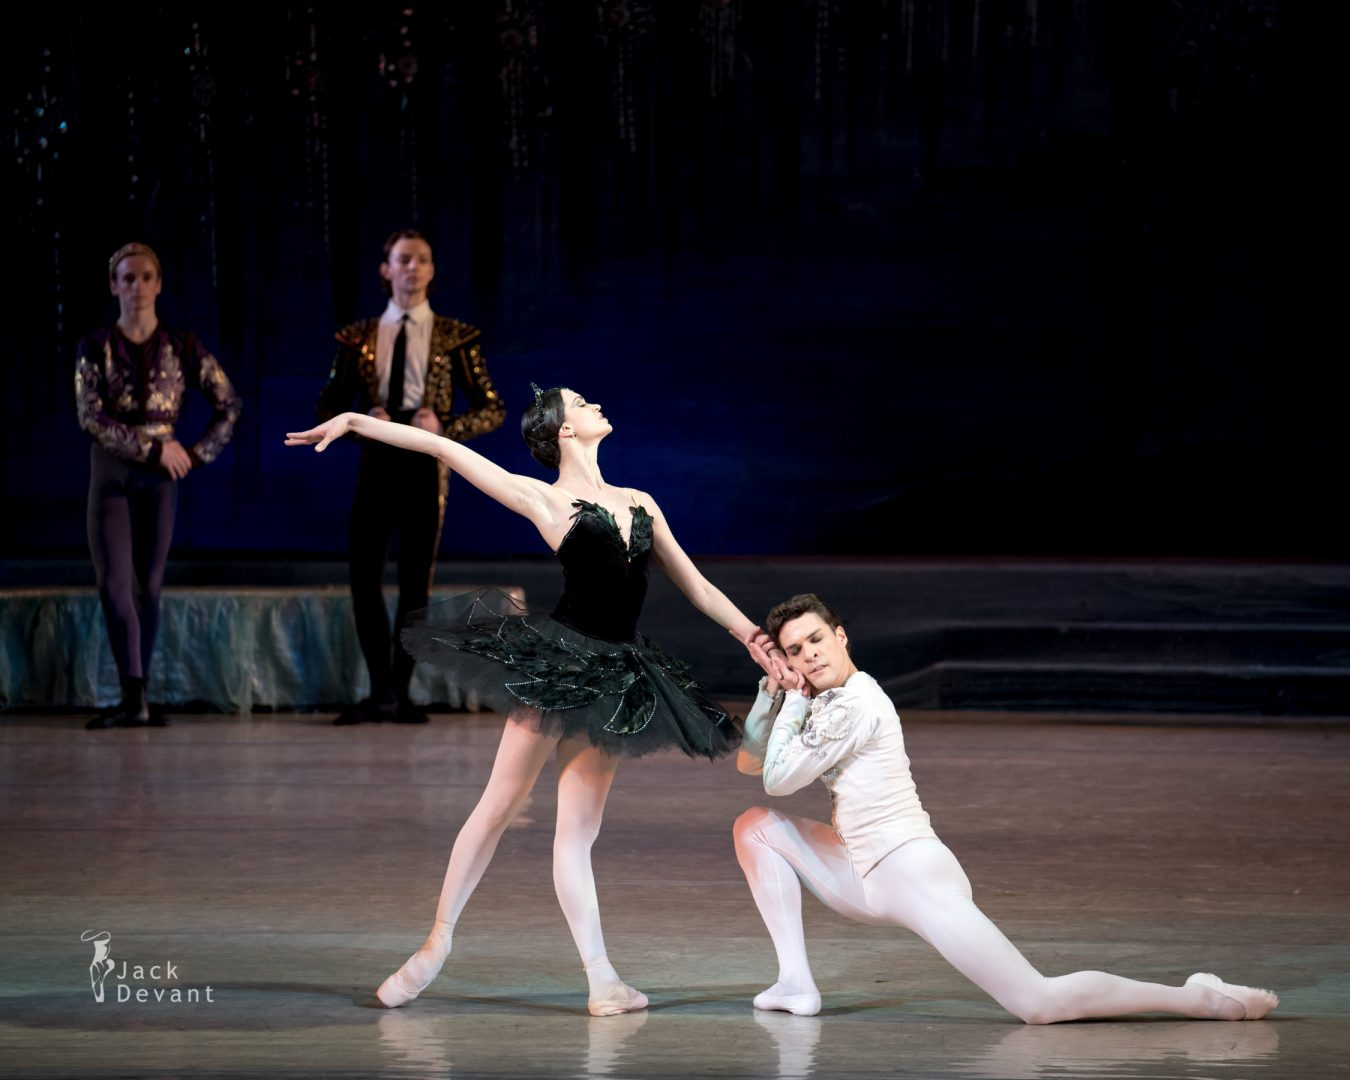 Swan Lake PDD Anastasiya Shevchenko and Denys Nedak final pose